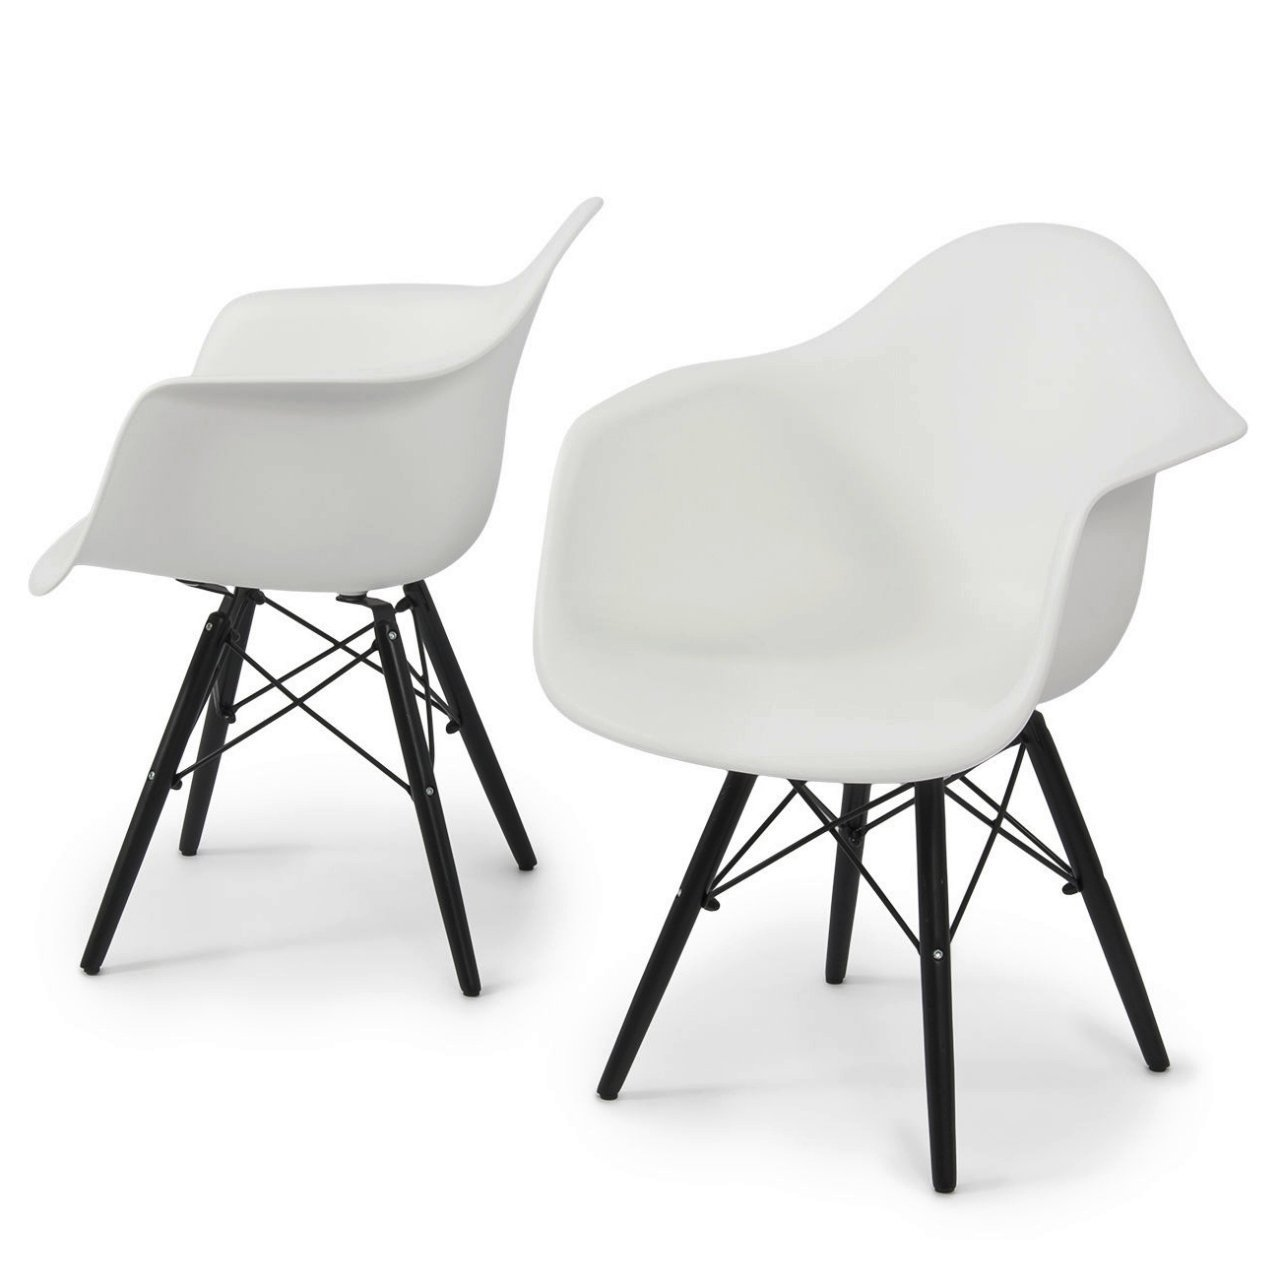 Modern Dining Chair Molded ABS Plastic Dowel Black Wooden Legs Posture Support Backrest Design Innovative Side Chair - Set of 2 White #1443